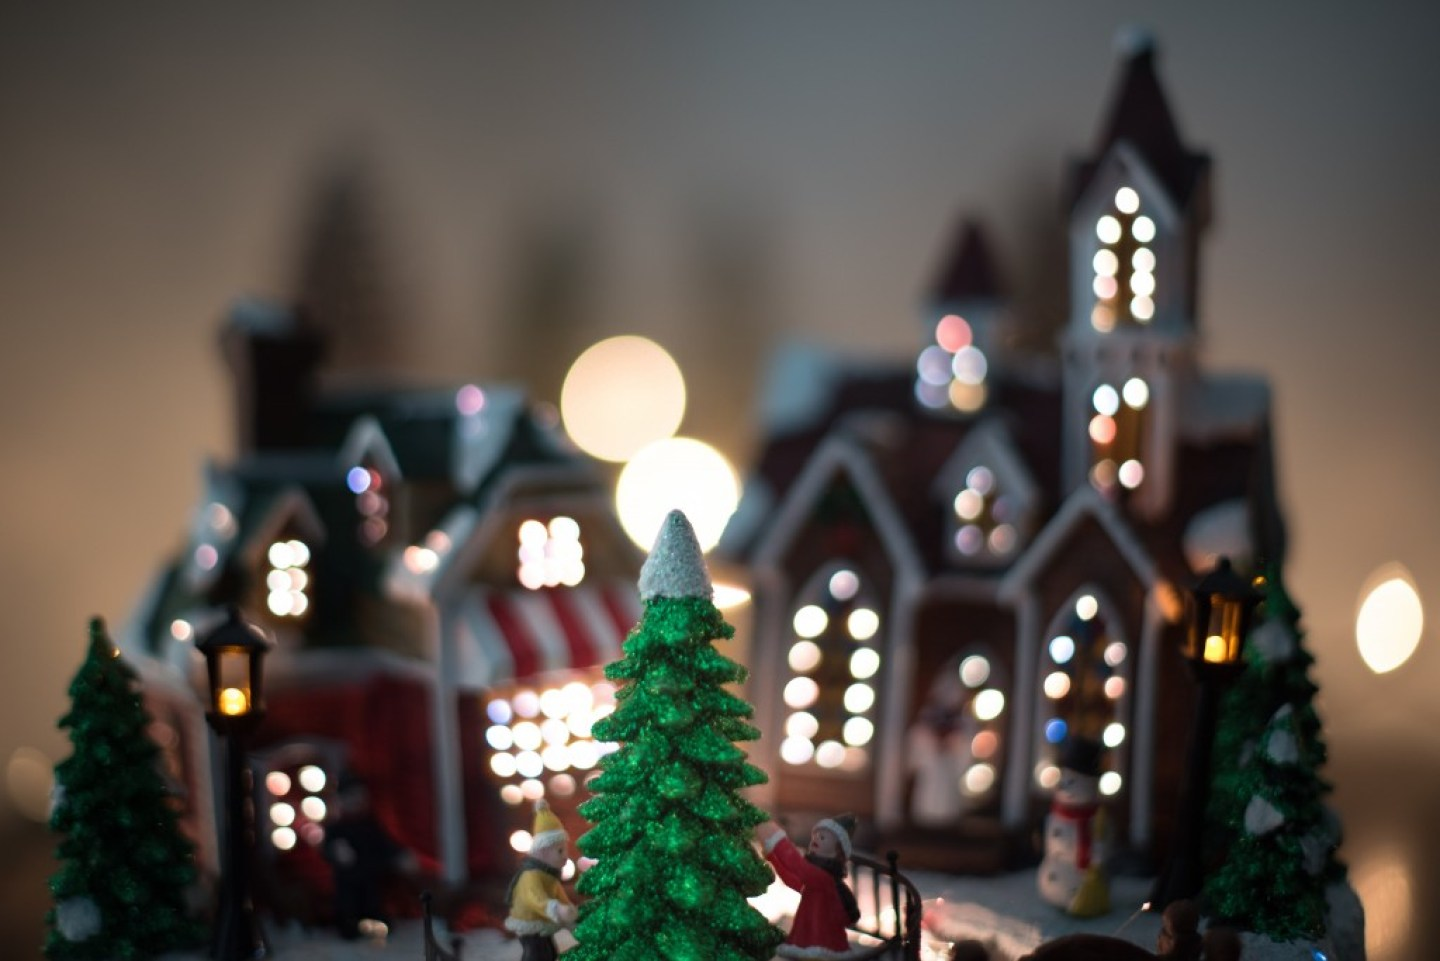 cute Christmas village scene ornament